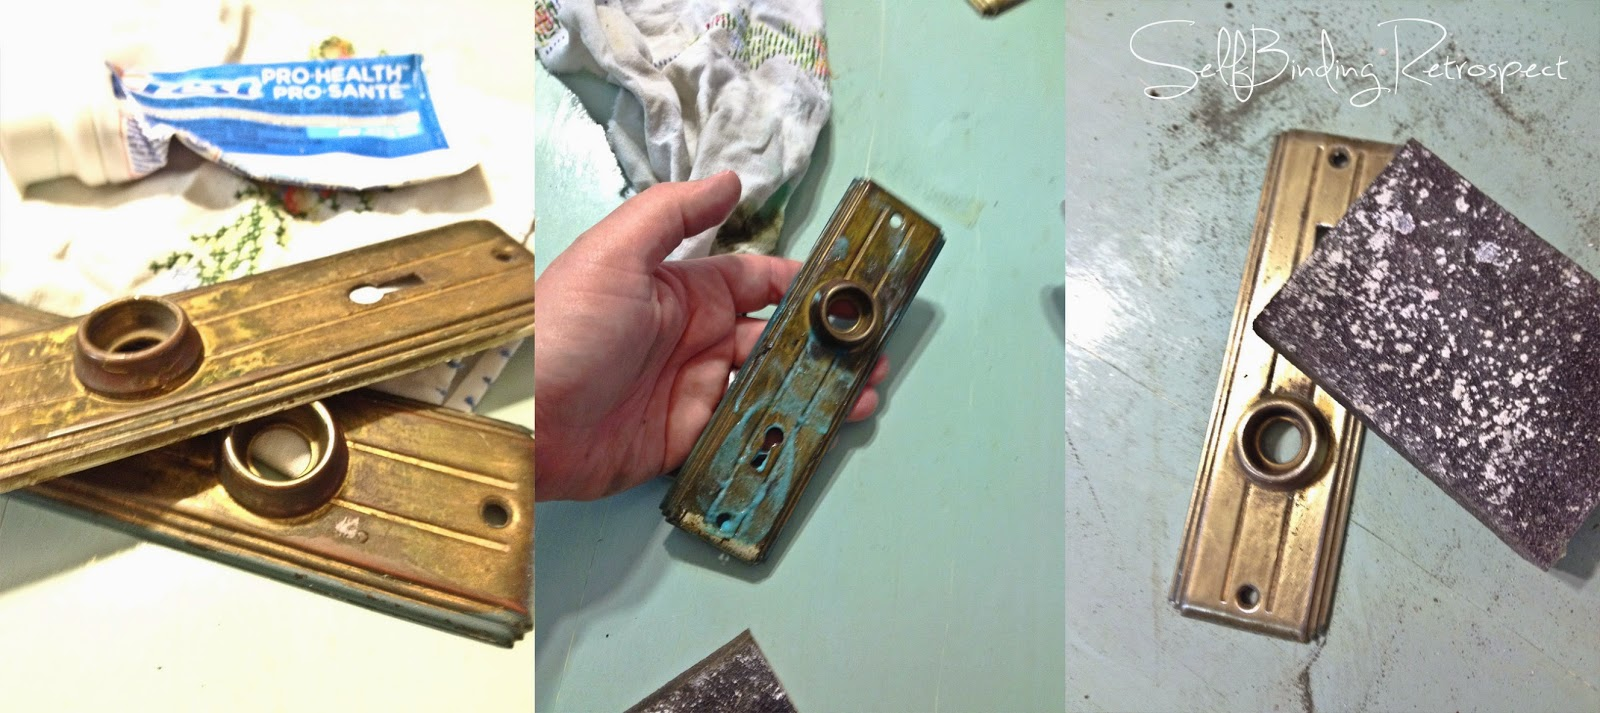 how to clean a dirty doorknob with sandpaper & toothpaste